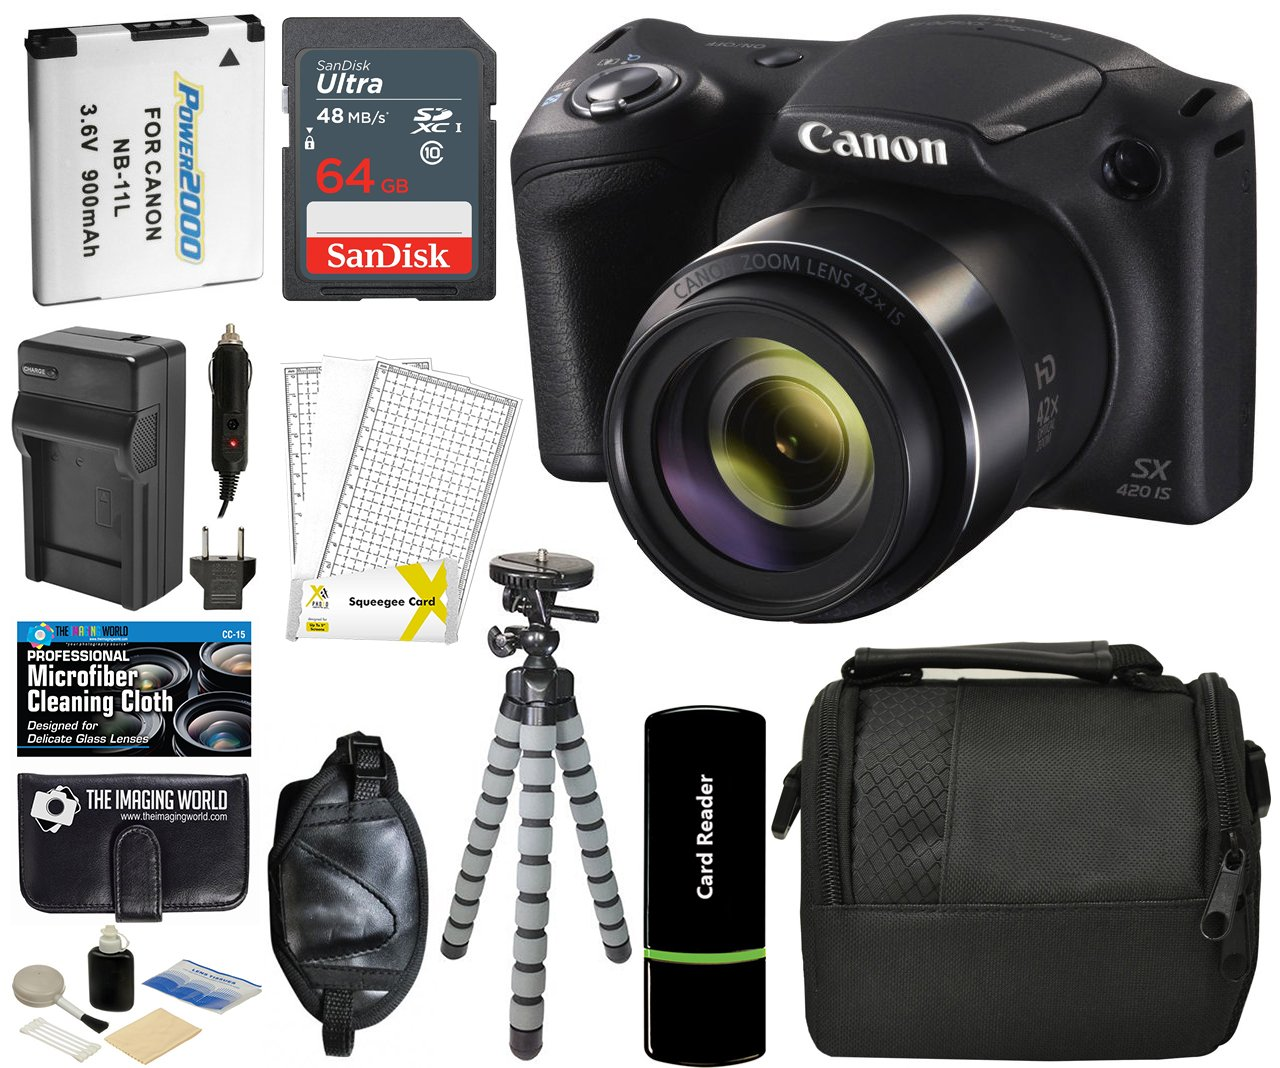 canon-powershot-sx420-is-digital-camera-black-with-20mp-42x-optical-zoom-720p-hd-video-built-in-wi-fi-64gb-card-reader-grip-spare-battery-and-charger-tripod-complete-accesso